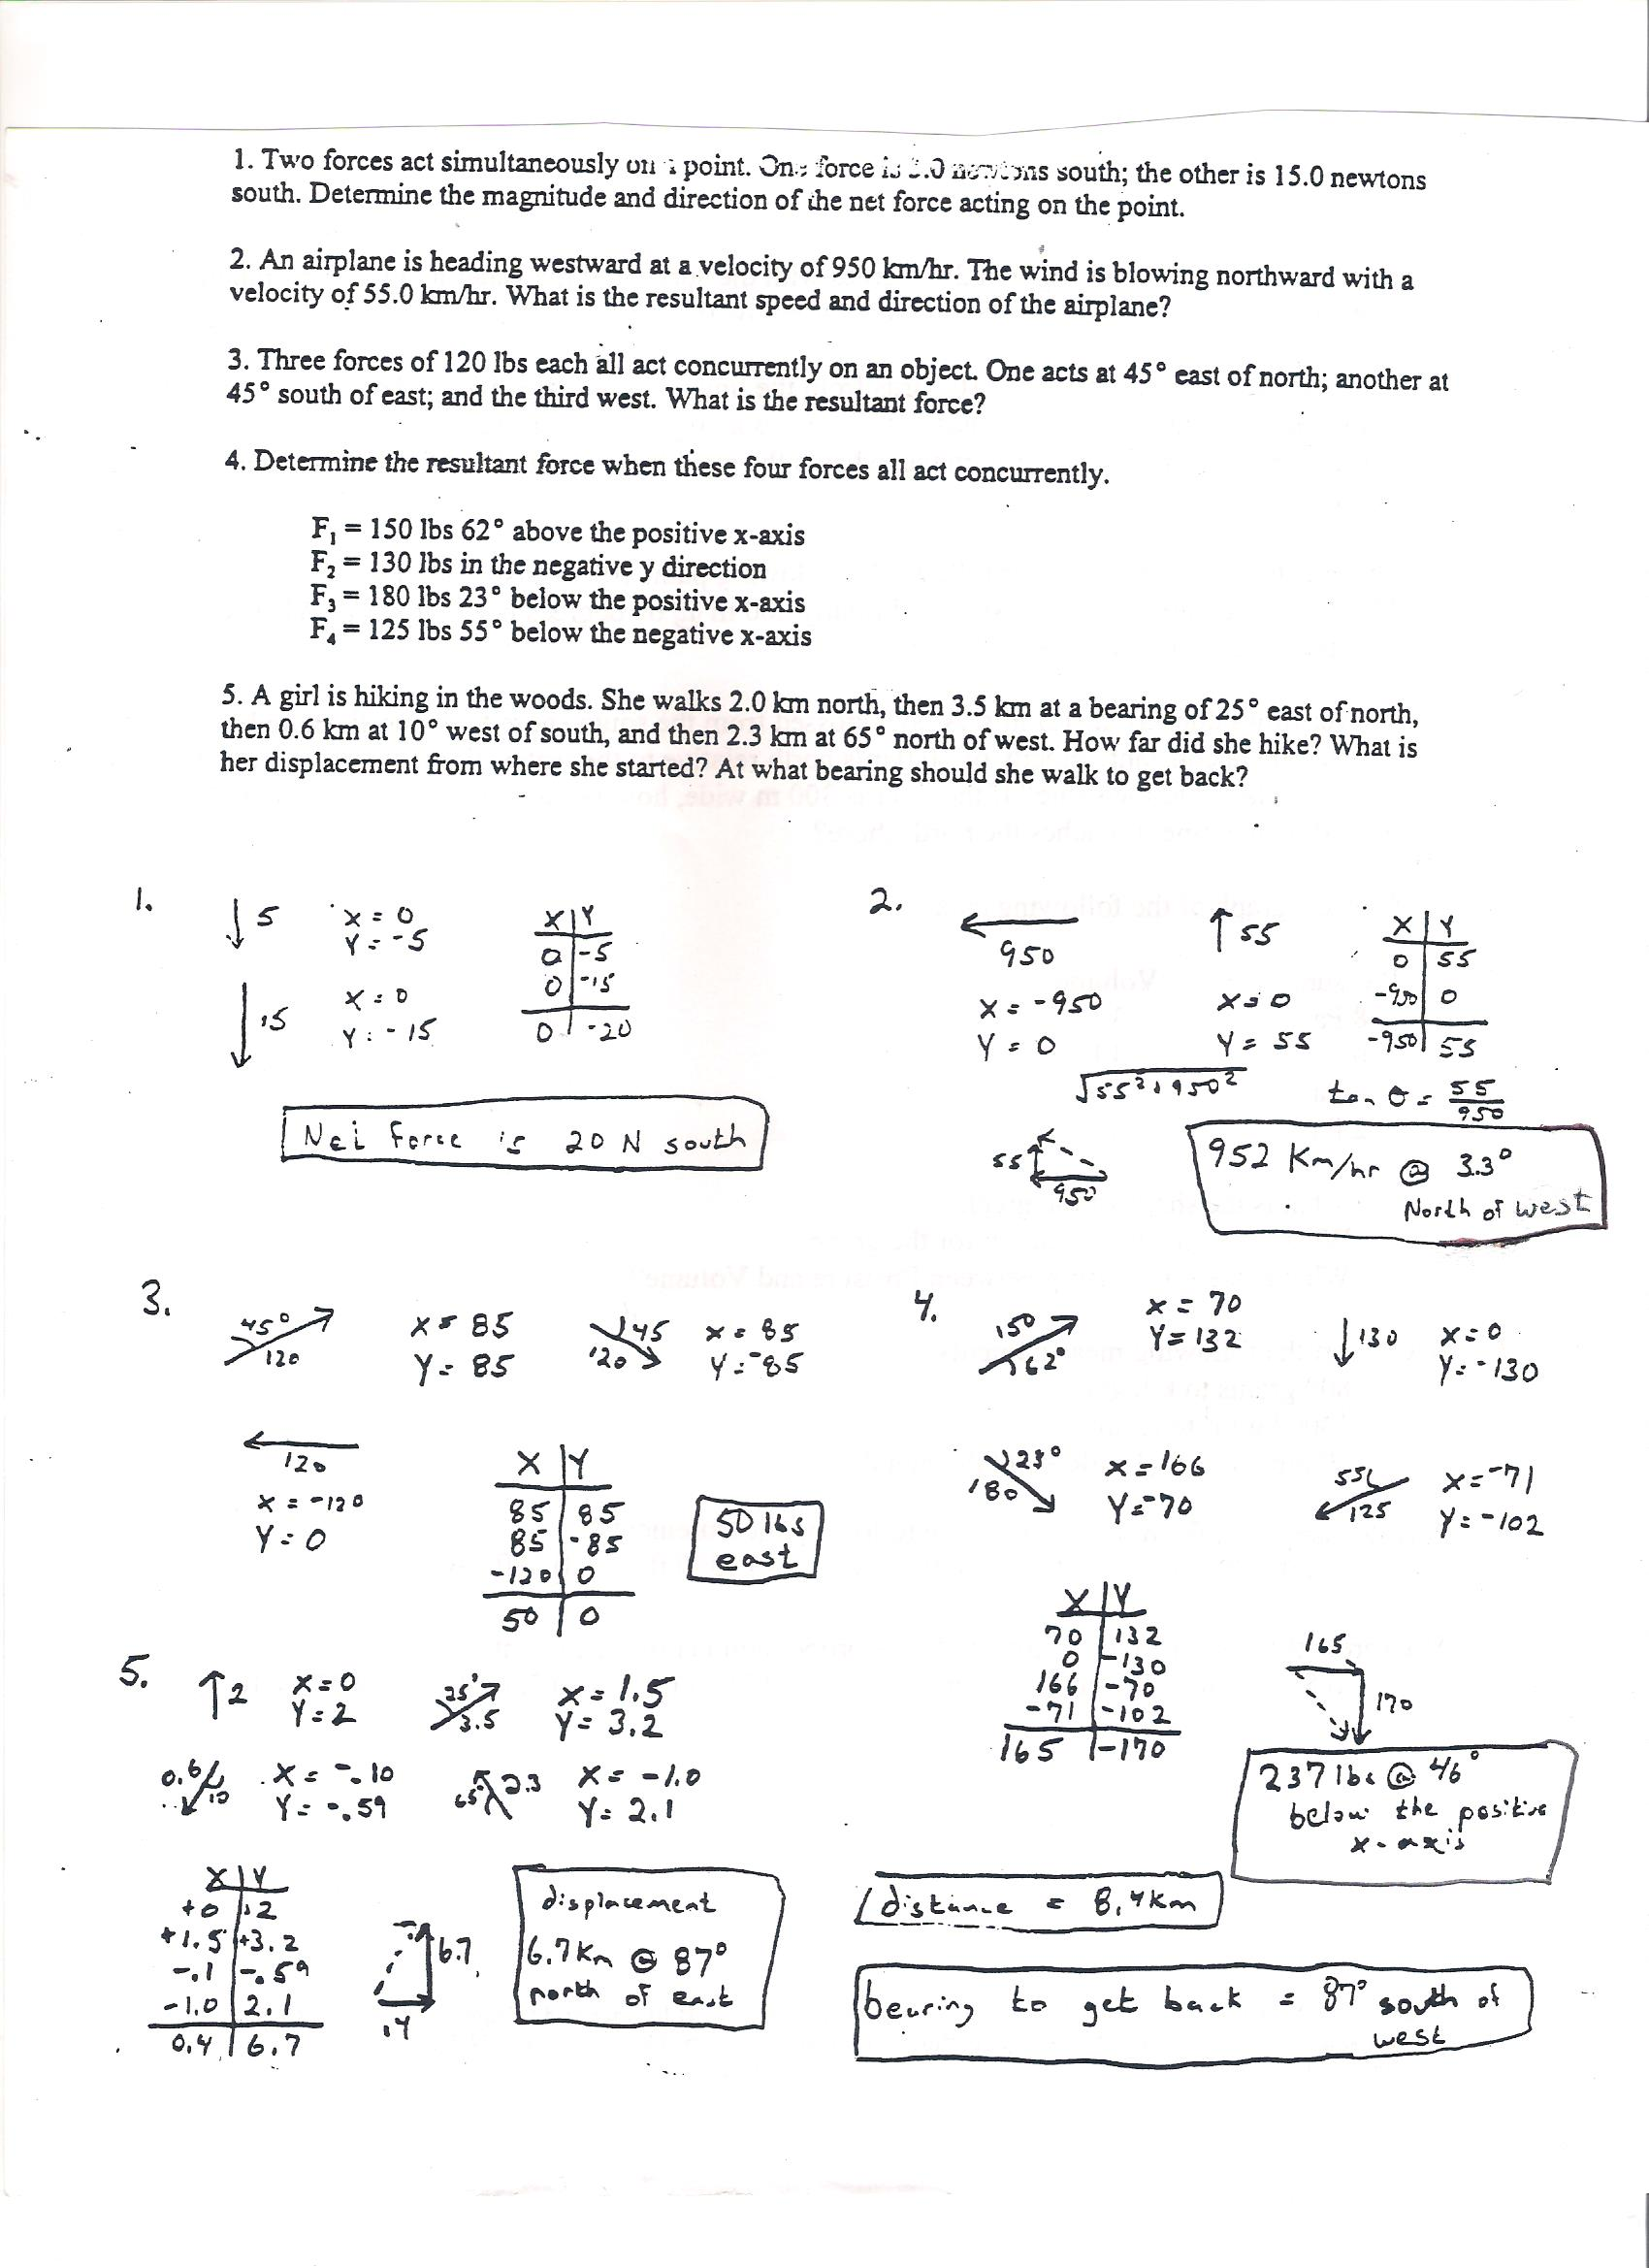 Home Arthur L Johnson High School – Motion Picture Analysis Worksheet